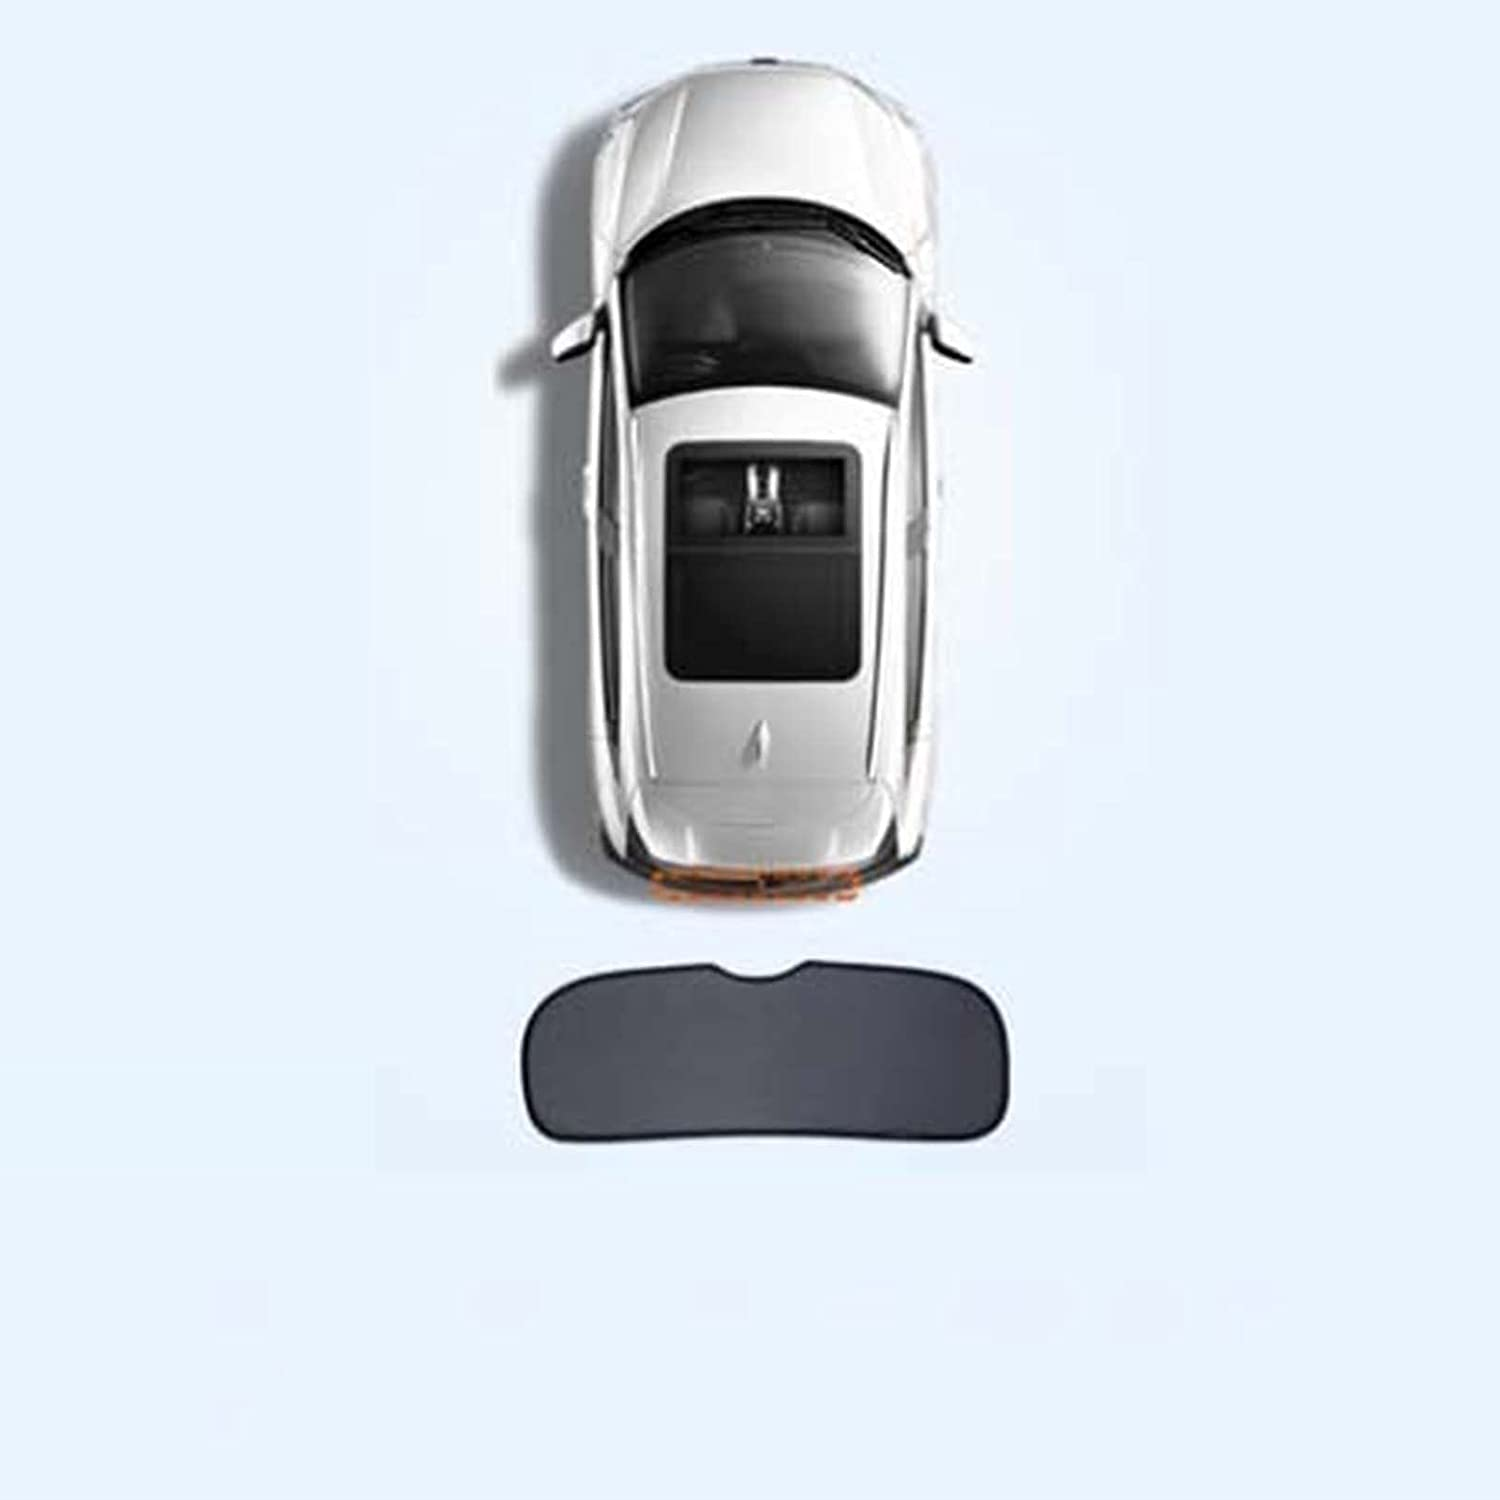 for Volkswagen Beetle Three Generations Fees free Side Bargain Wi 2012-present Car